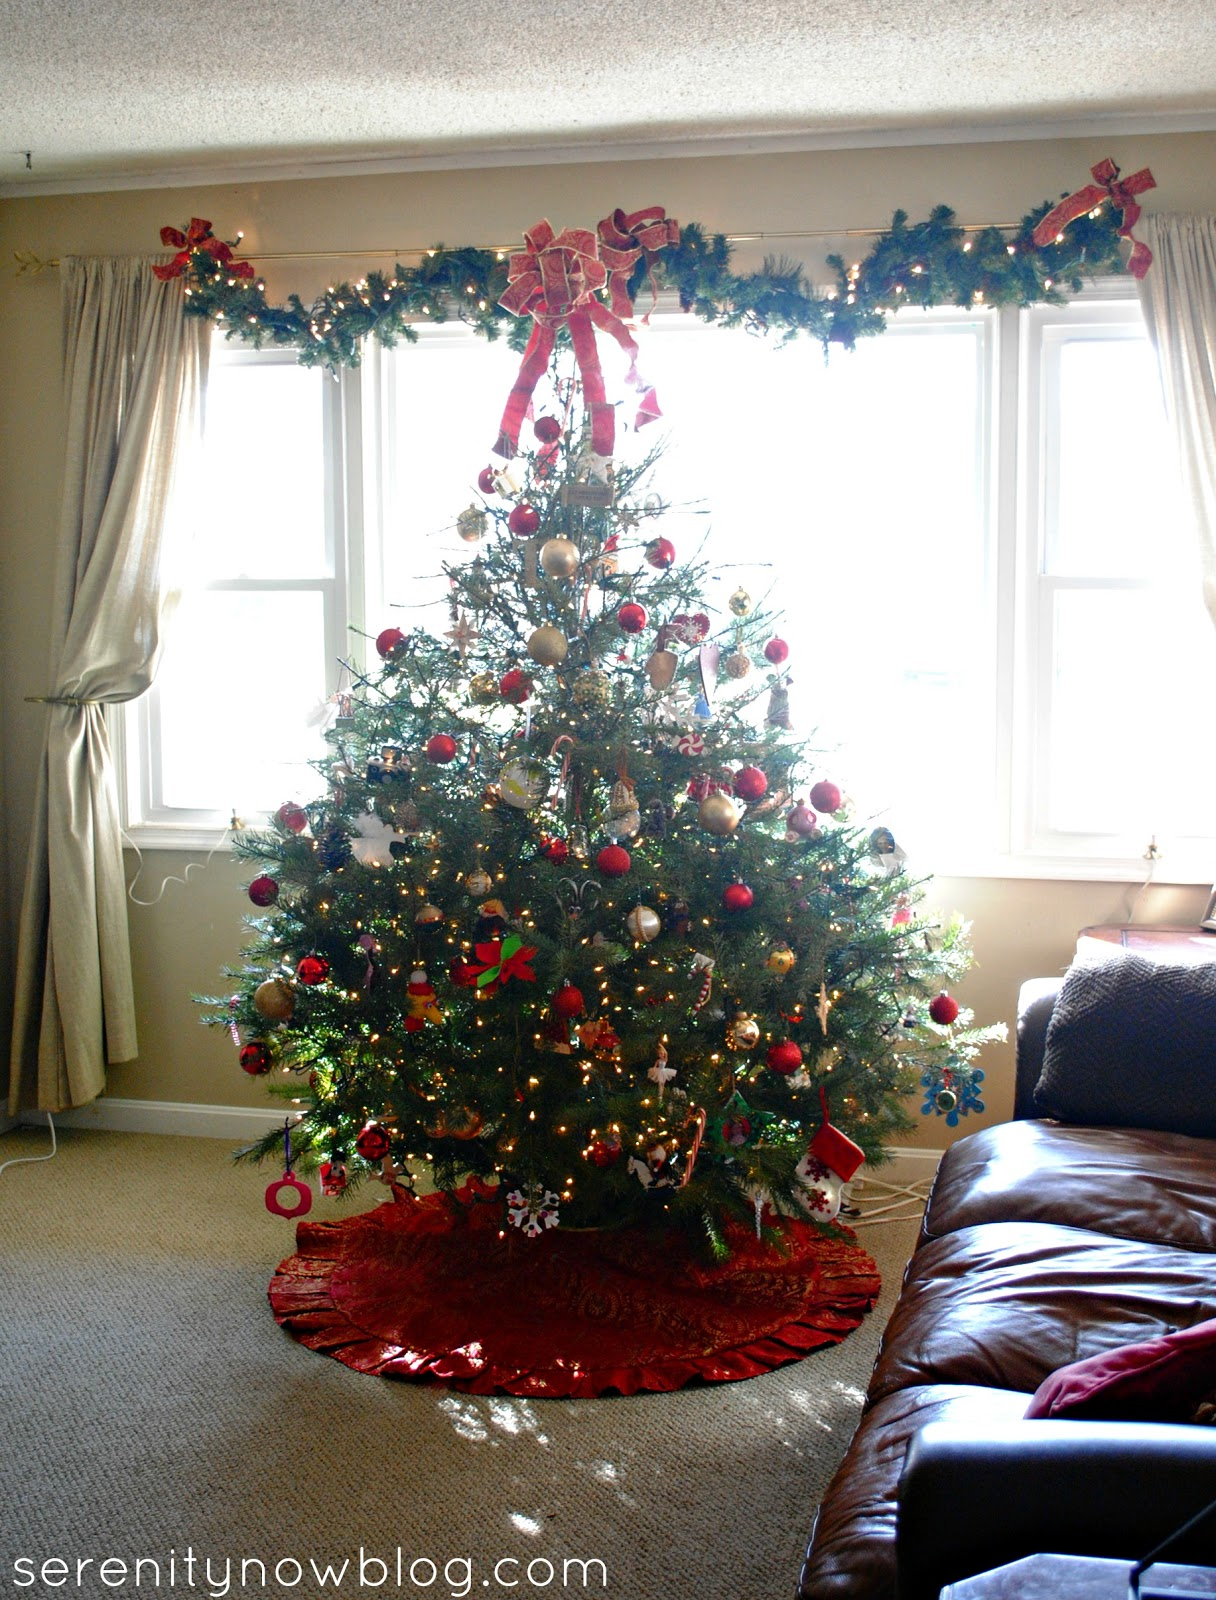 Serenity Now: Our Christmas Tree and Decorations, 2012